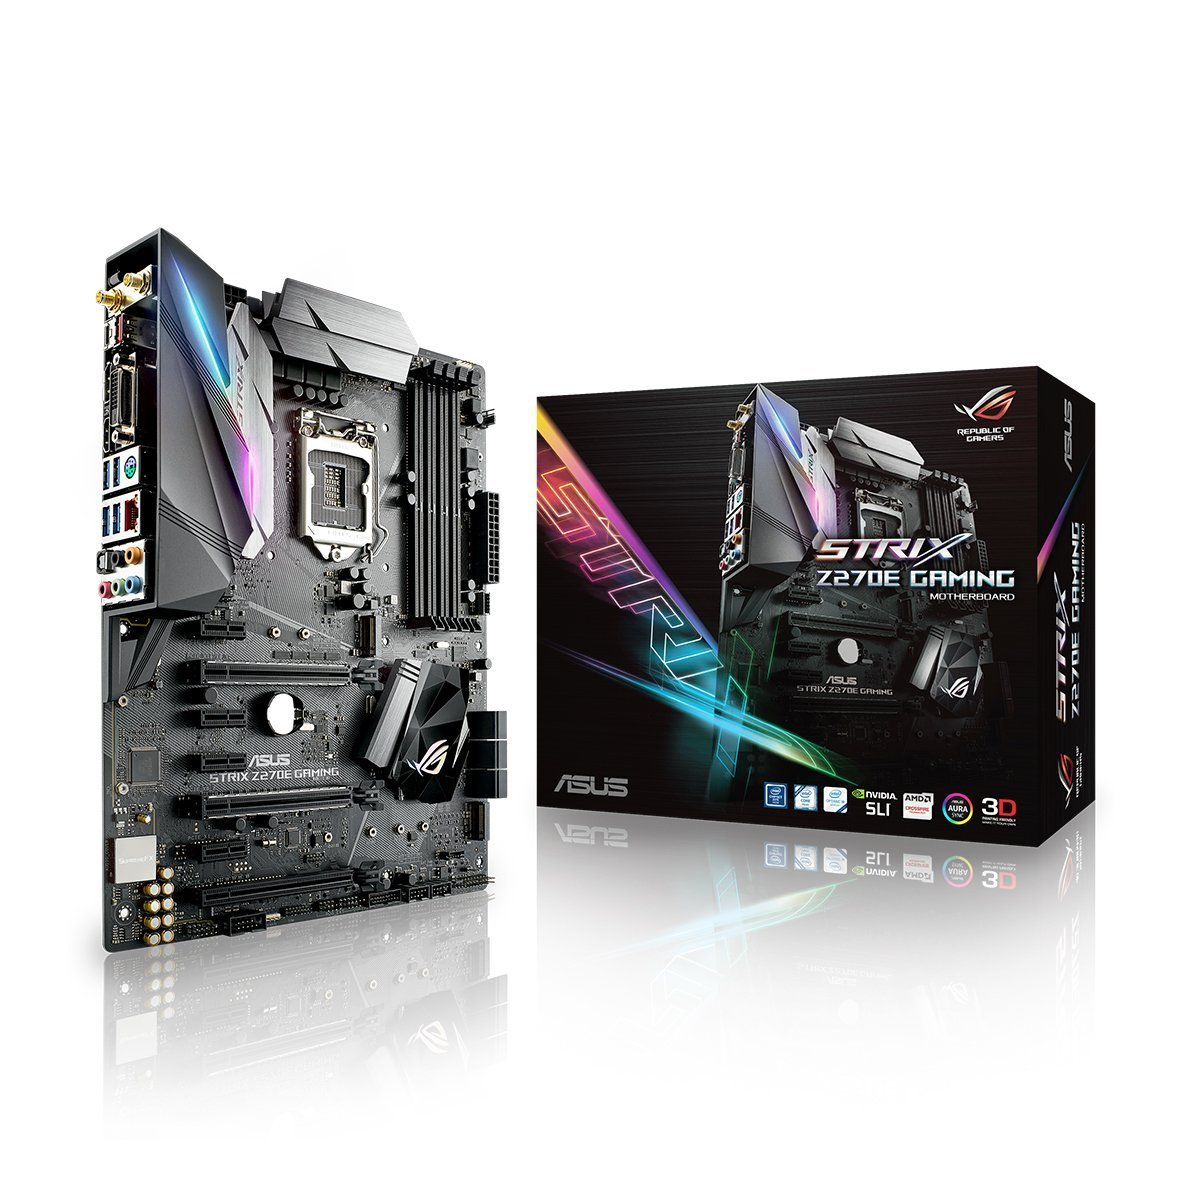 ASUS ROG STRIX Z270E GAMING LGA1151 DDR4 DP HDMI DVI M.2 ATX Motherboard with onboard AC Wifi and USB 3.1 by Asus